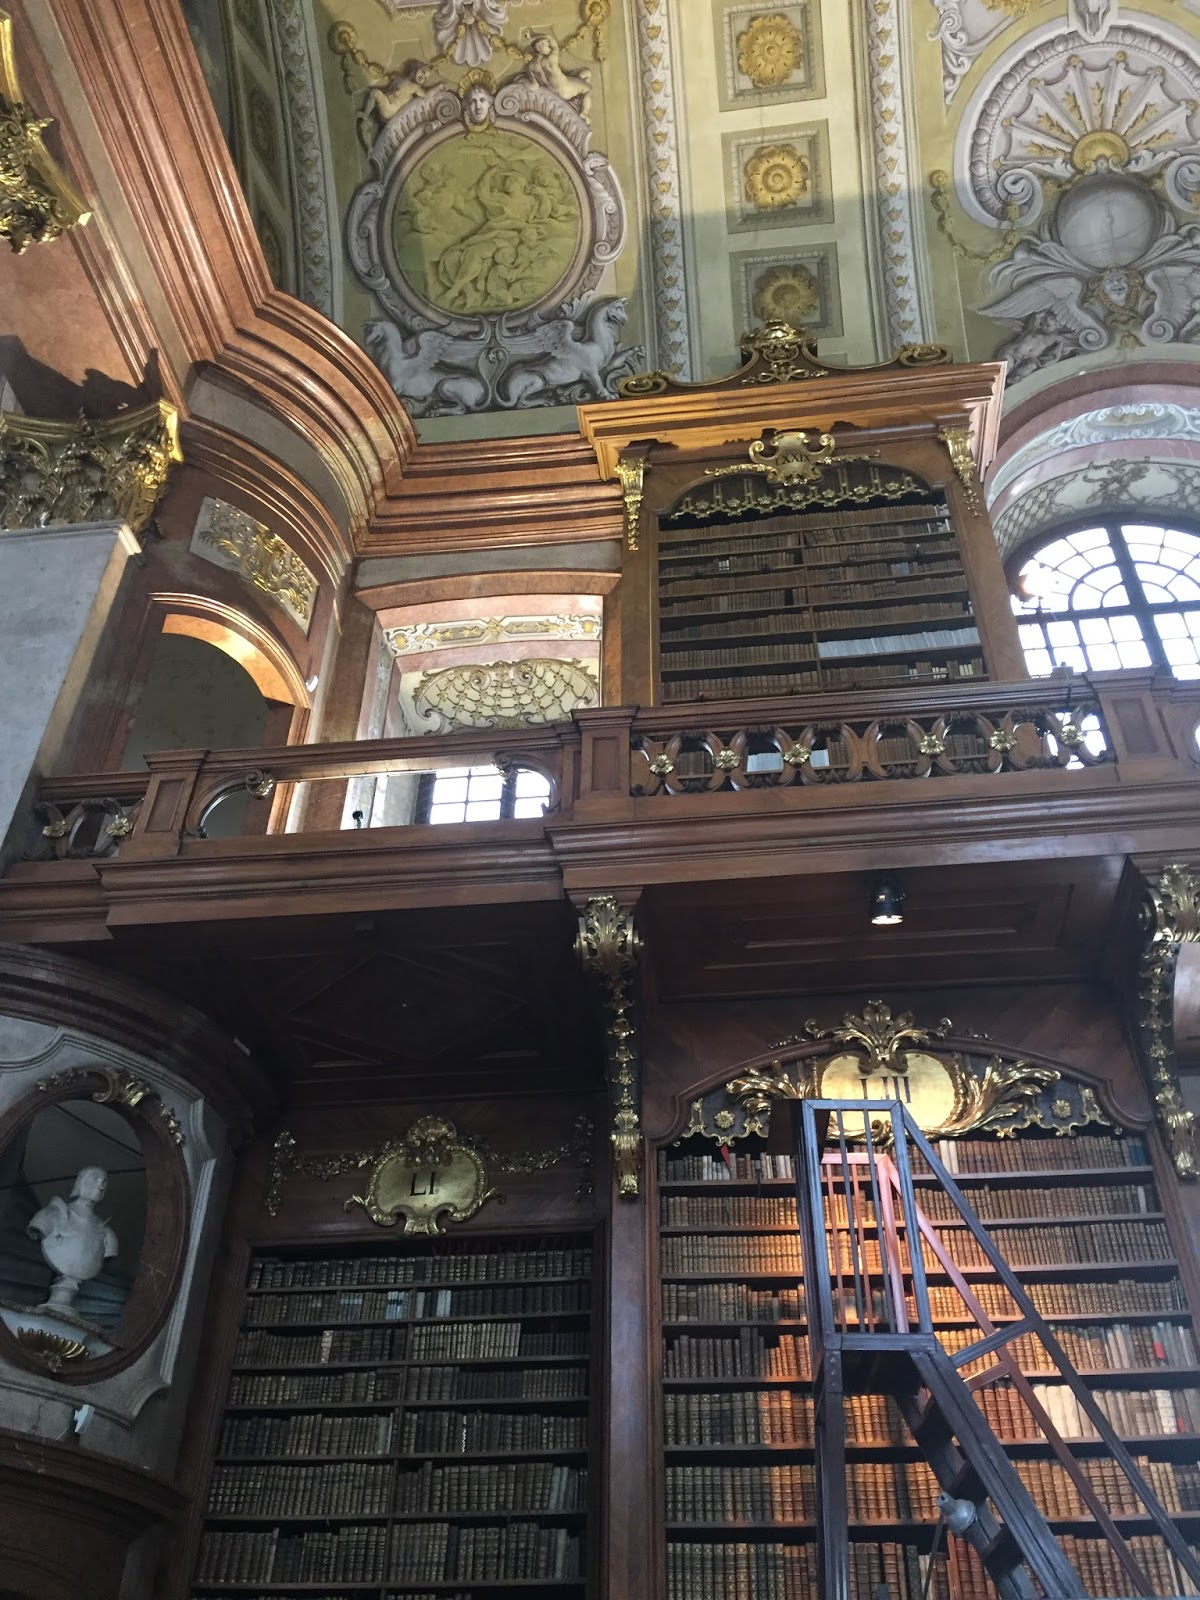 Austria's National Library